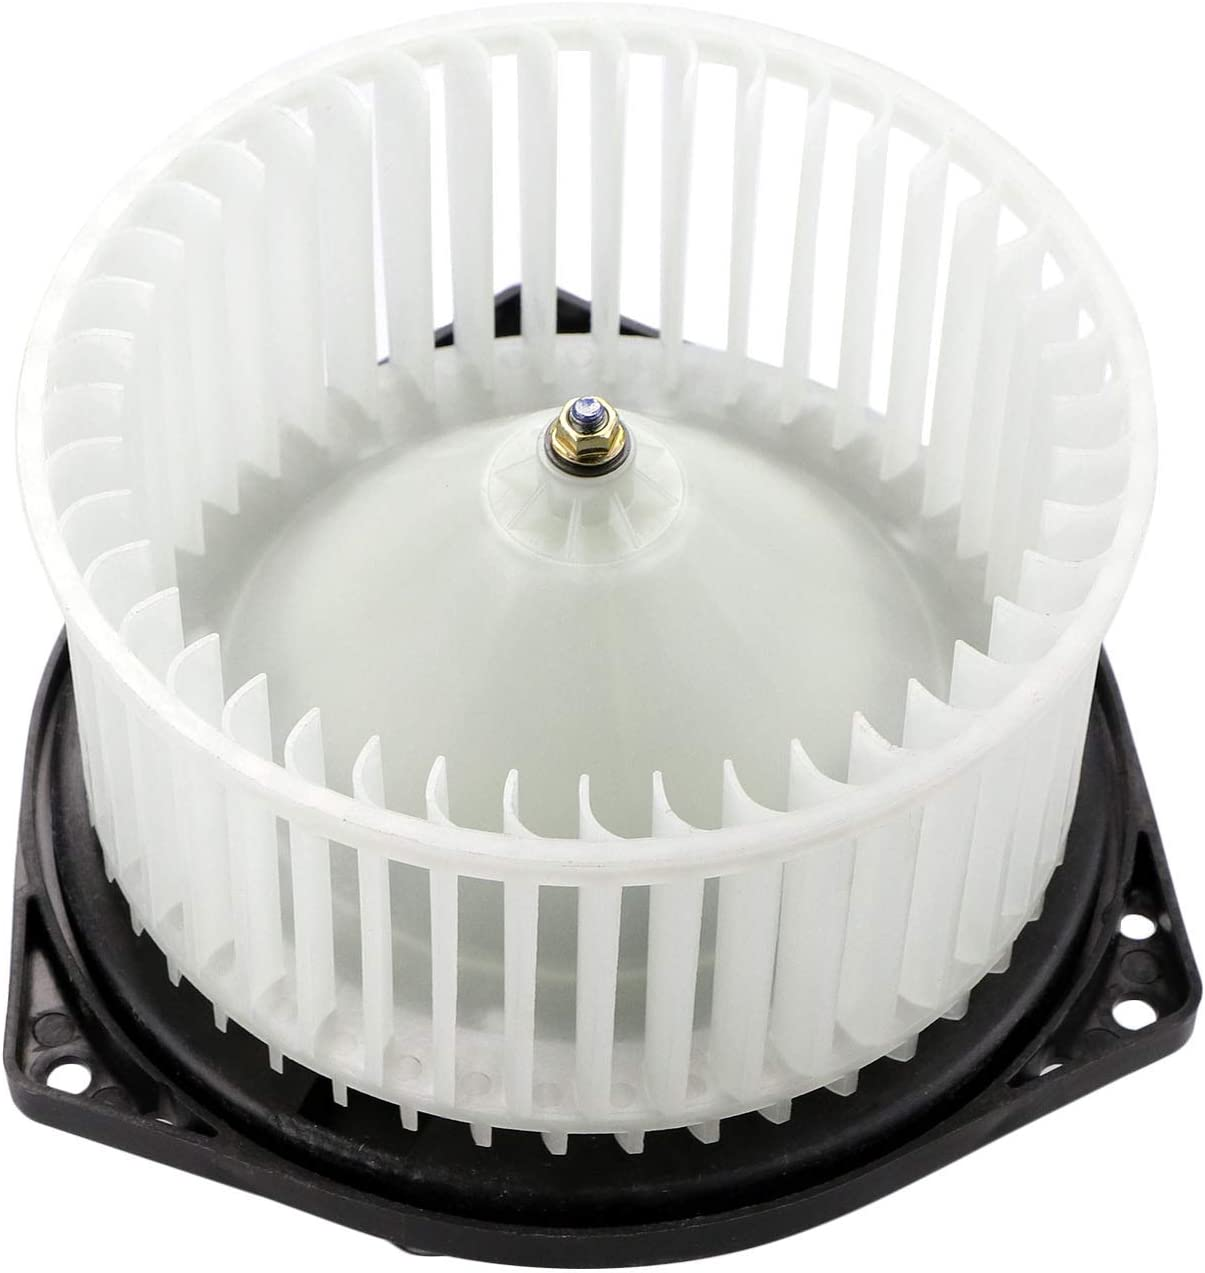 700044 27220-7J201 HVAC Blower Motor with Fan Cage Fit For 1999-2002 Infiniti G20// 1996-2004 Pathfinder// 1995-1999 Maxima// 1996-2003 Infiniti I30 //Infiniti QX4